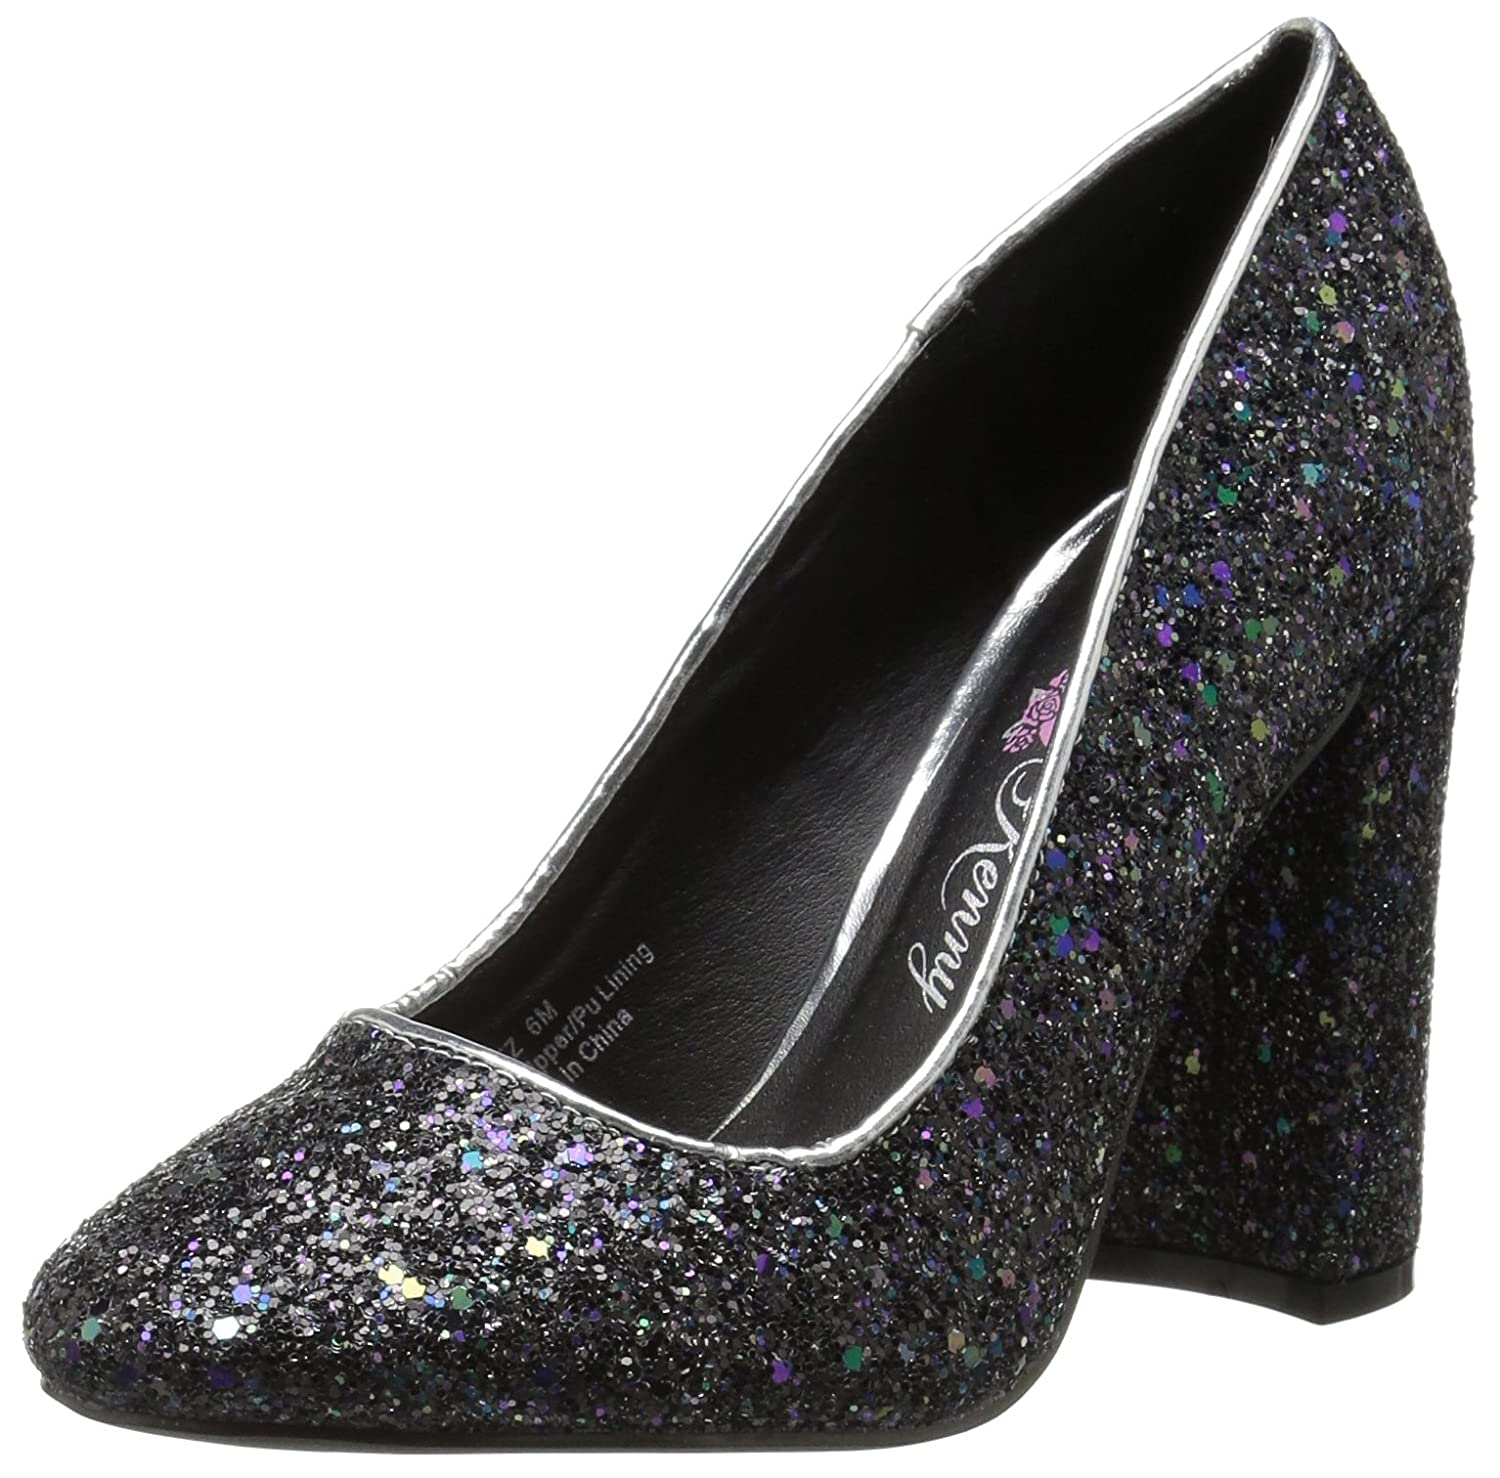 Penny Loves Pumps Kenny Frauen Pumps Loves Silber Groesse 9 US /40 EU - a2ad34